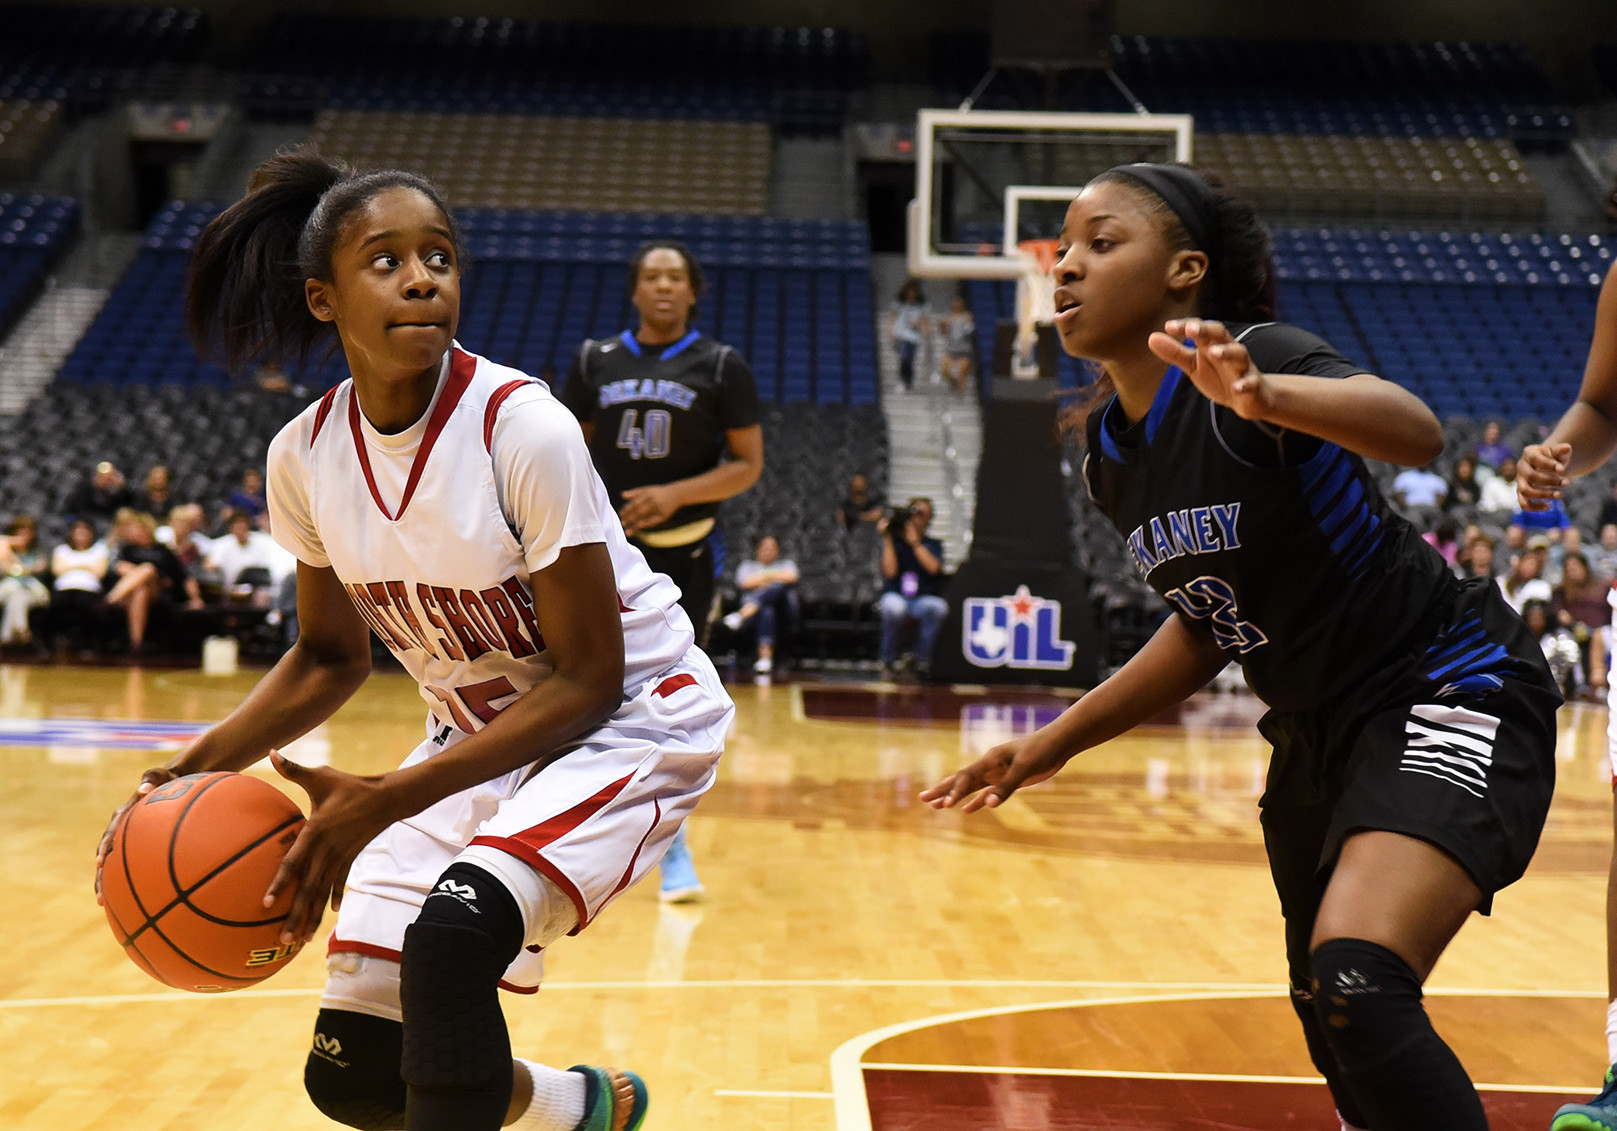 North Shore junior guard Chasity Patterson (15) works the ball against Dekaney senior guard Kene Hamilton during 2nd quarter action of their Class 6A girls basketball state semifinal versus Dekaney at the Alamodome in San Antonio on Friday, Mar. 4, 2016. (Photo by Jerry Baker/Freelance)